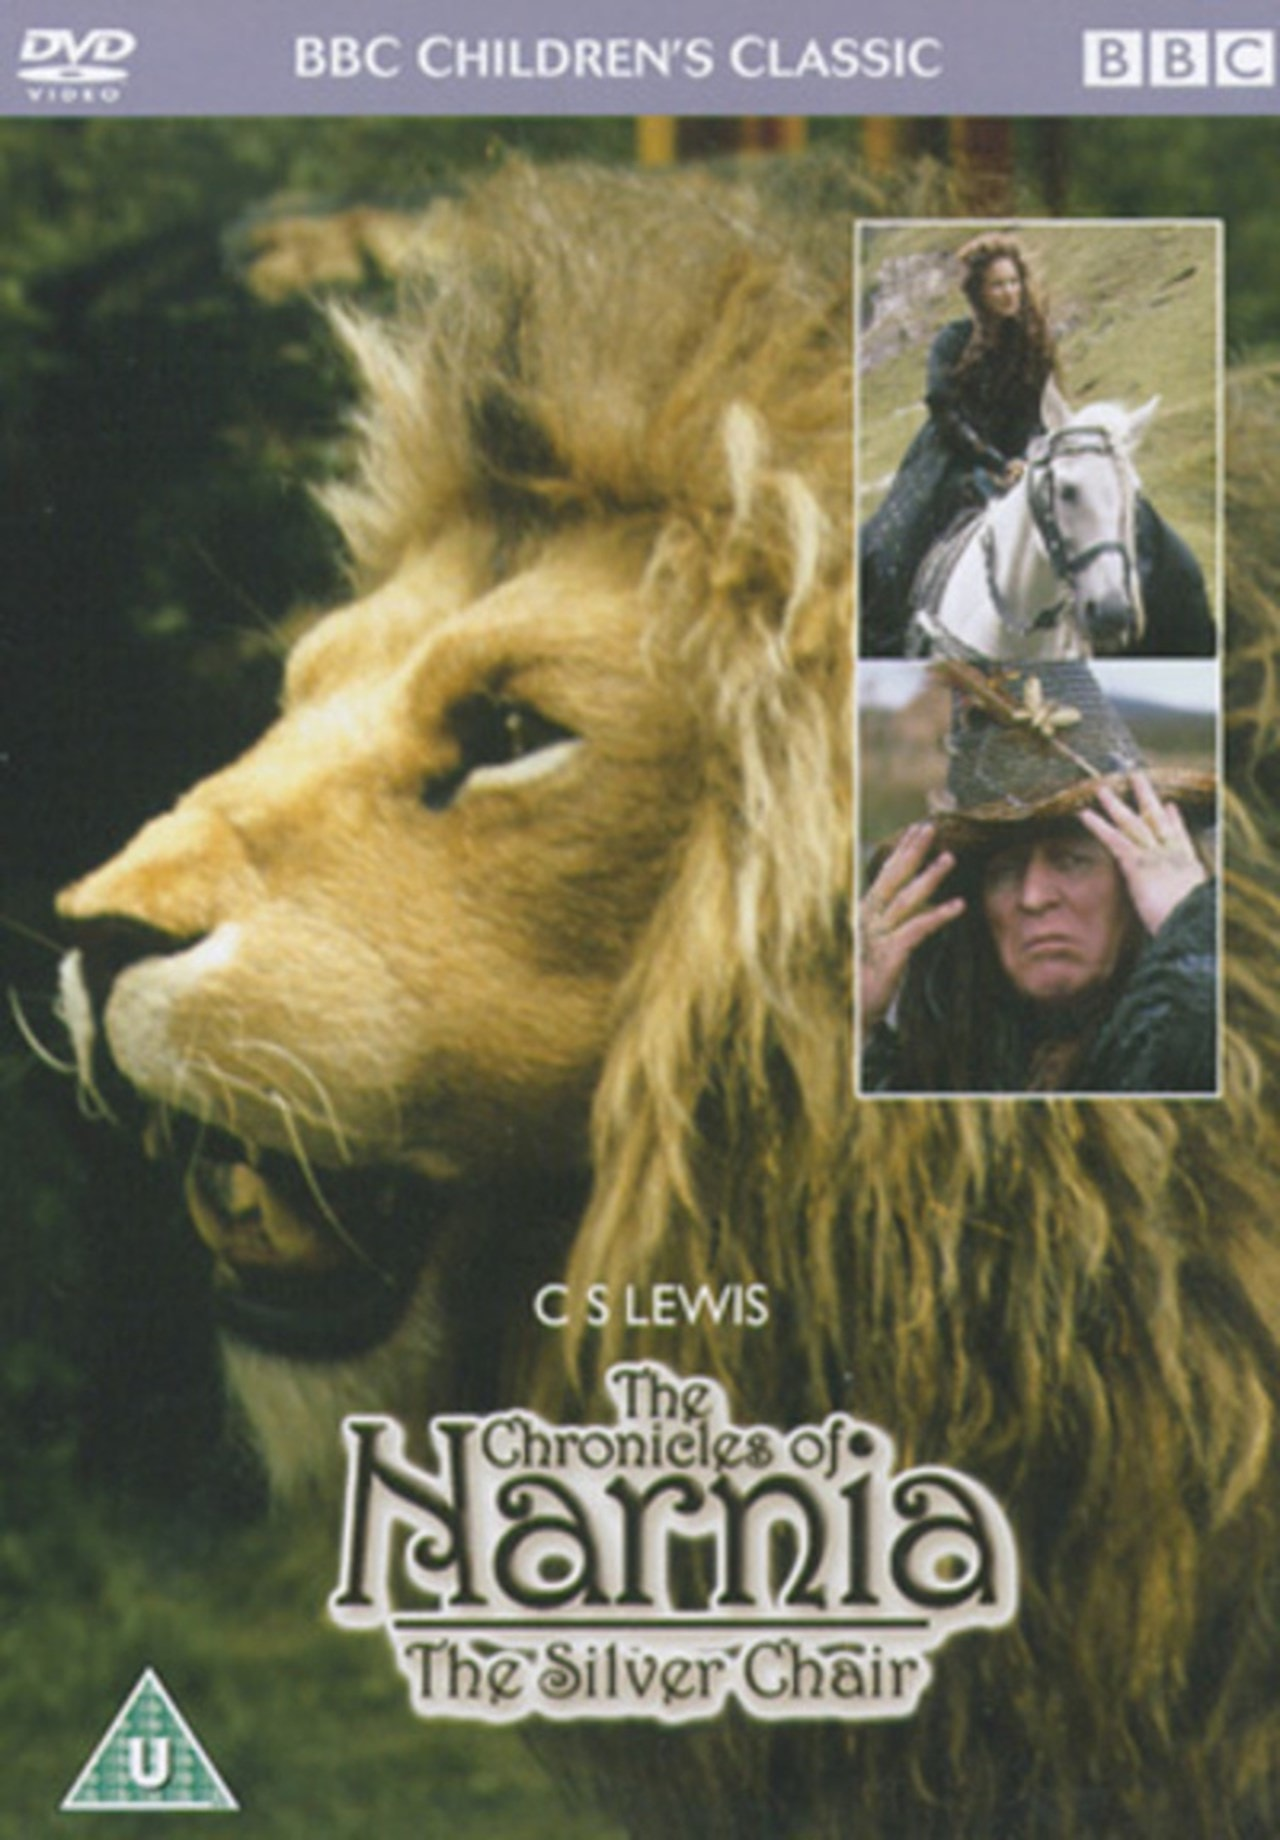 The Chronicles of Narnia: The Silver Chair - 1